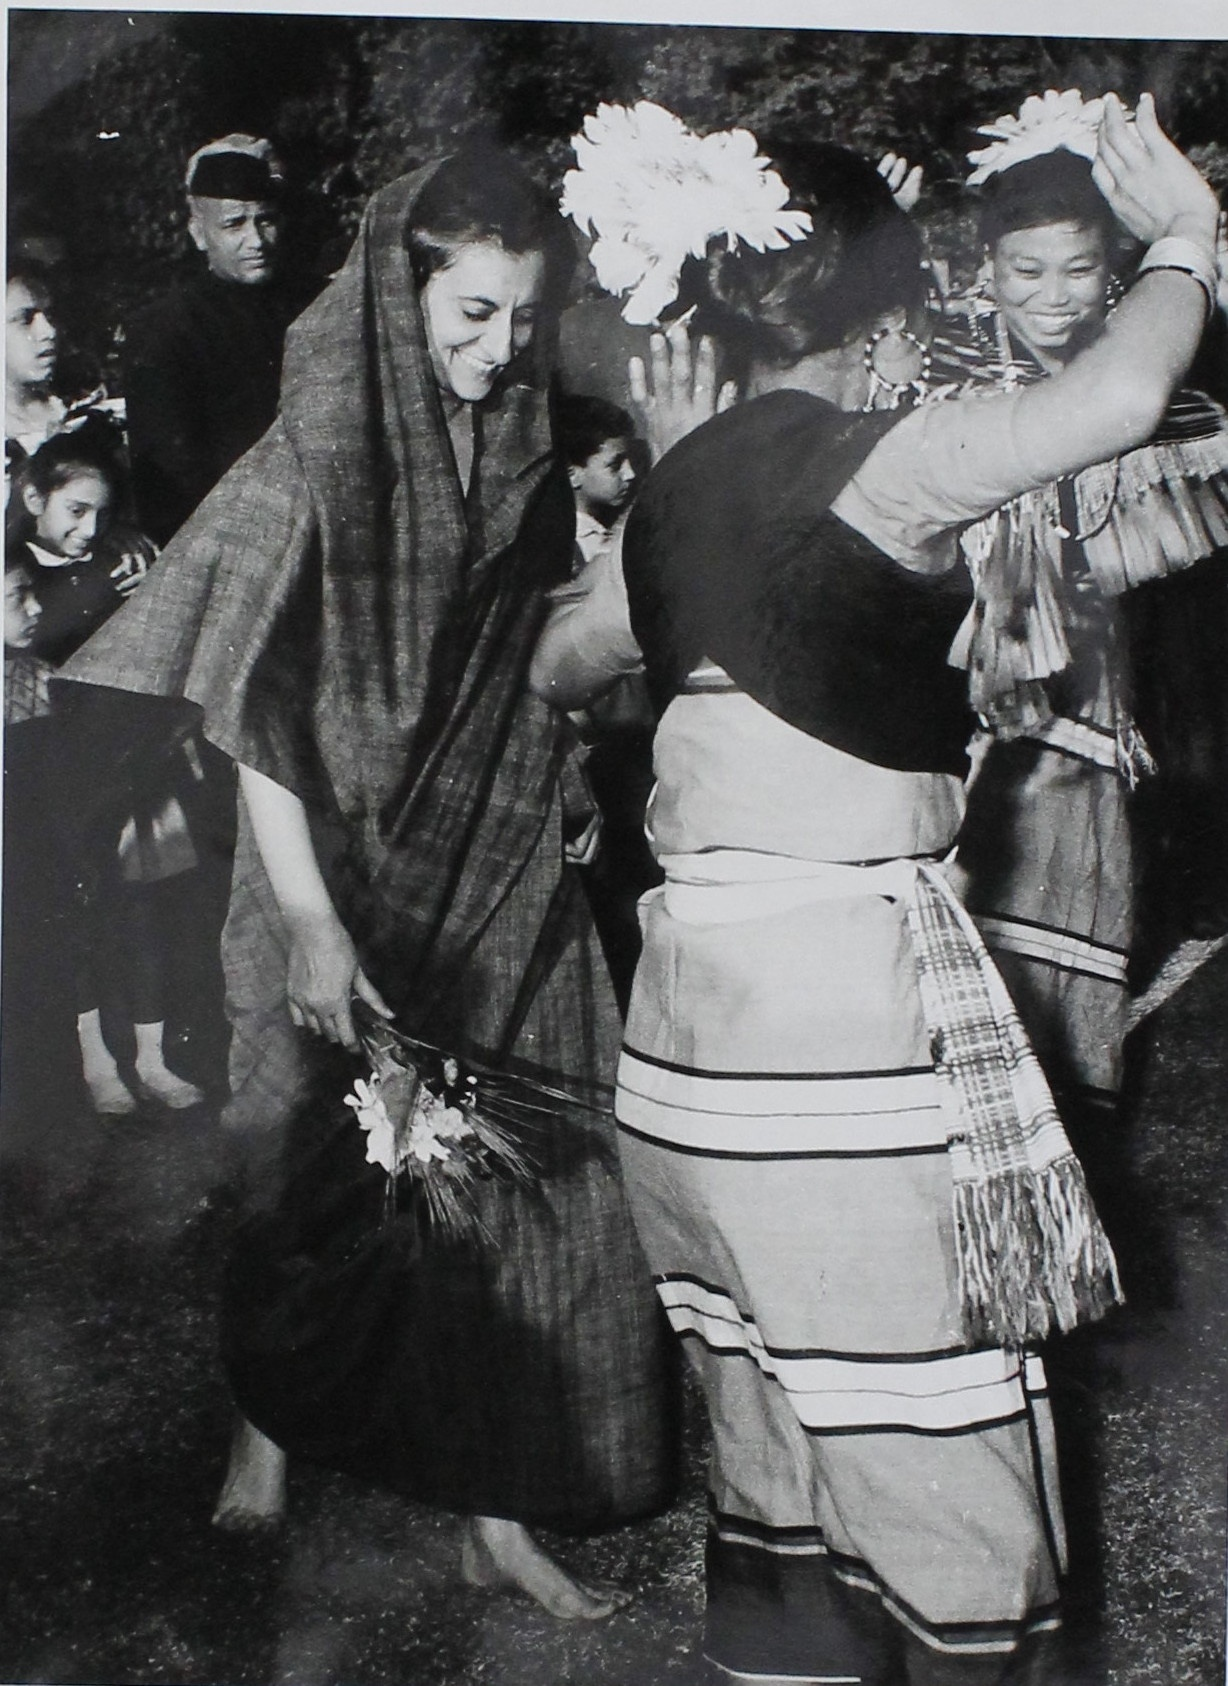 Indira Gandhi joins folk dancers from Nagaland in the Capital for Republic Day celebrations (January 31, 1966). New Delhi. Courtesy: Indira Gandhi Memorial Trust